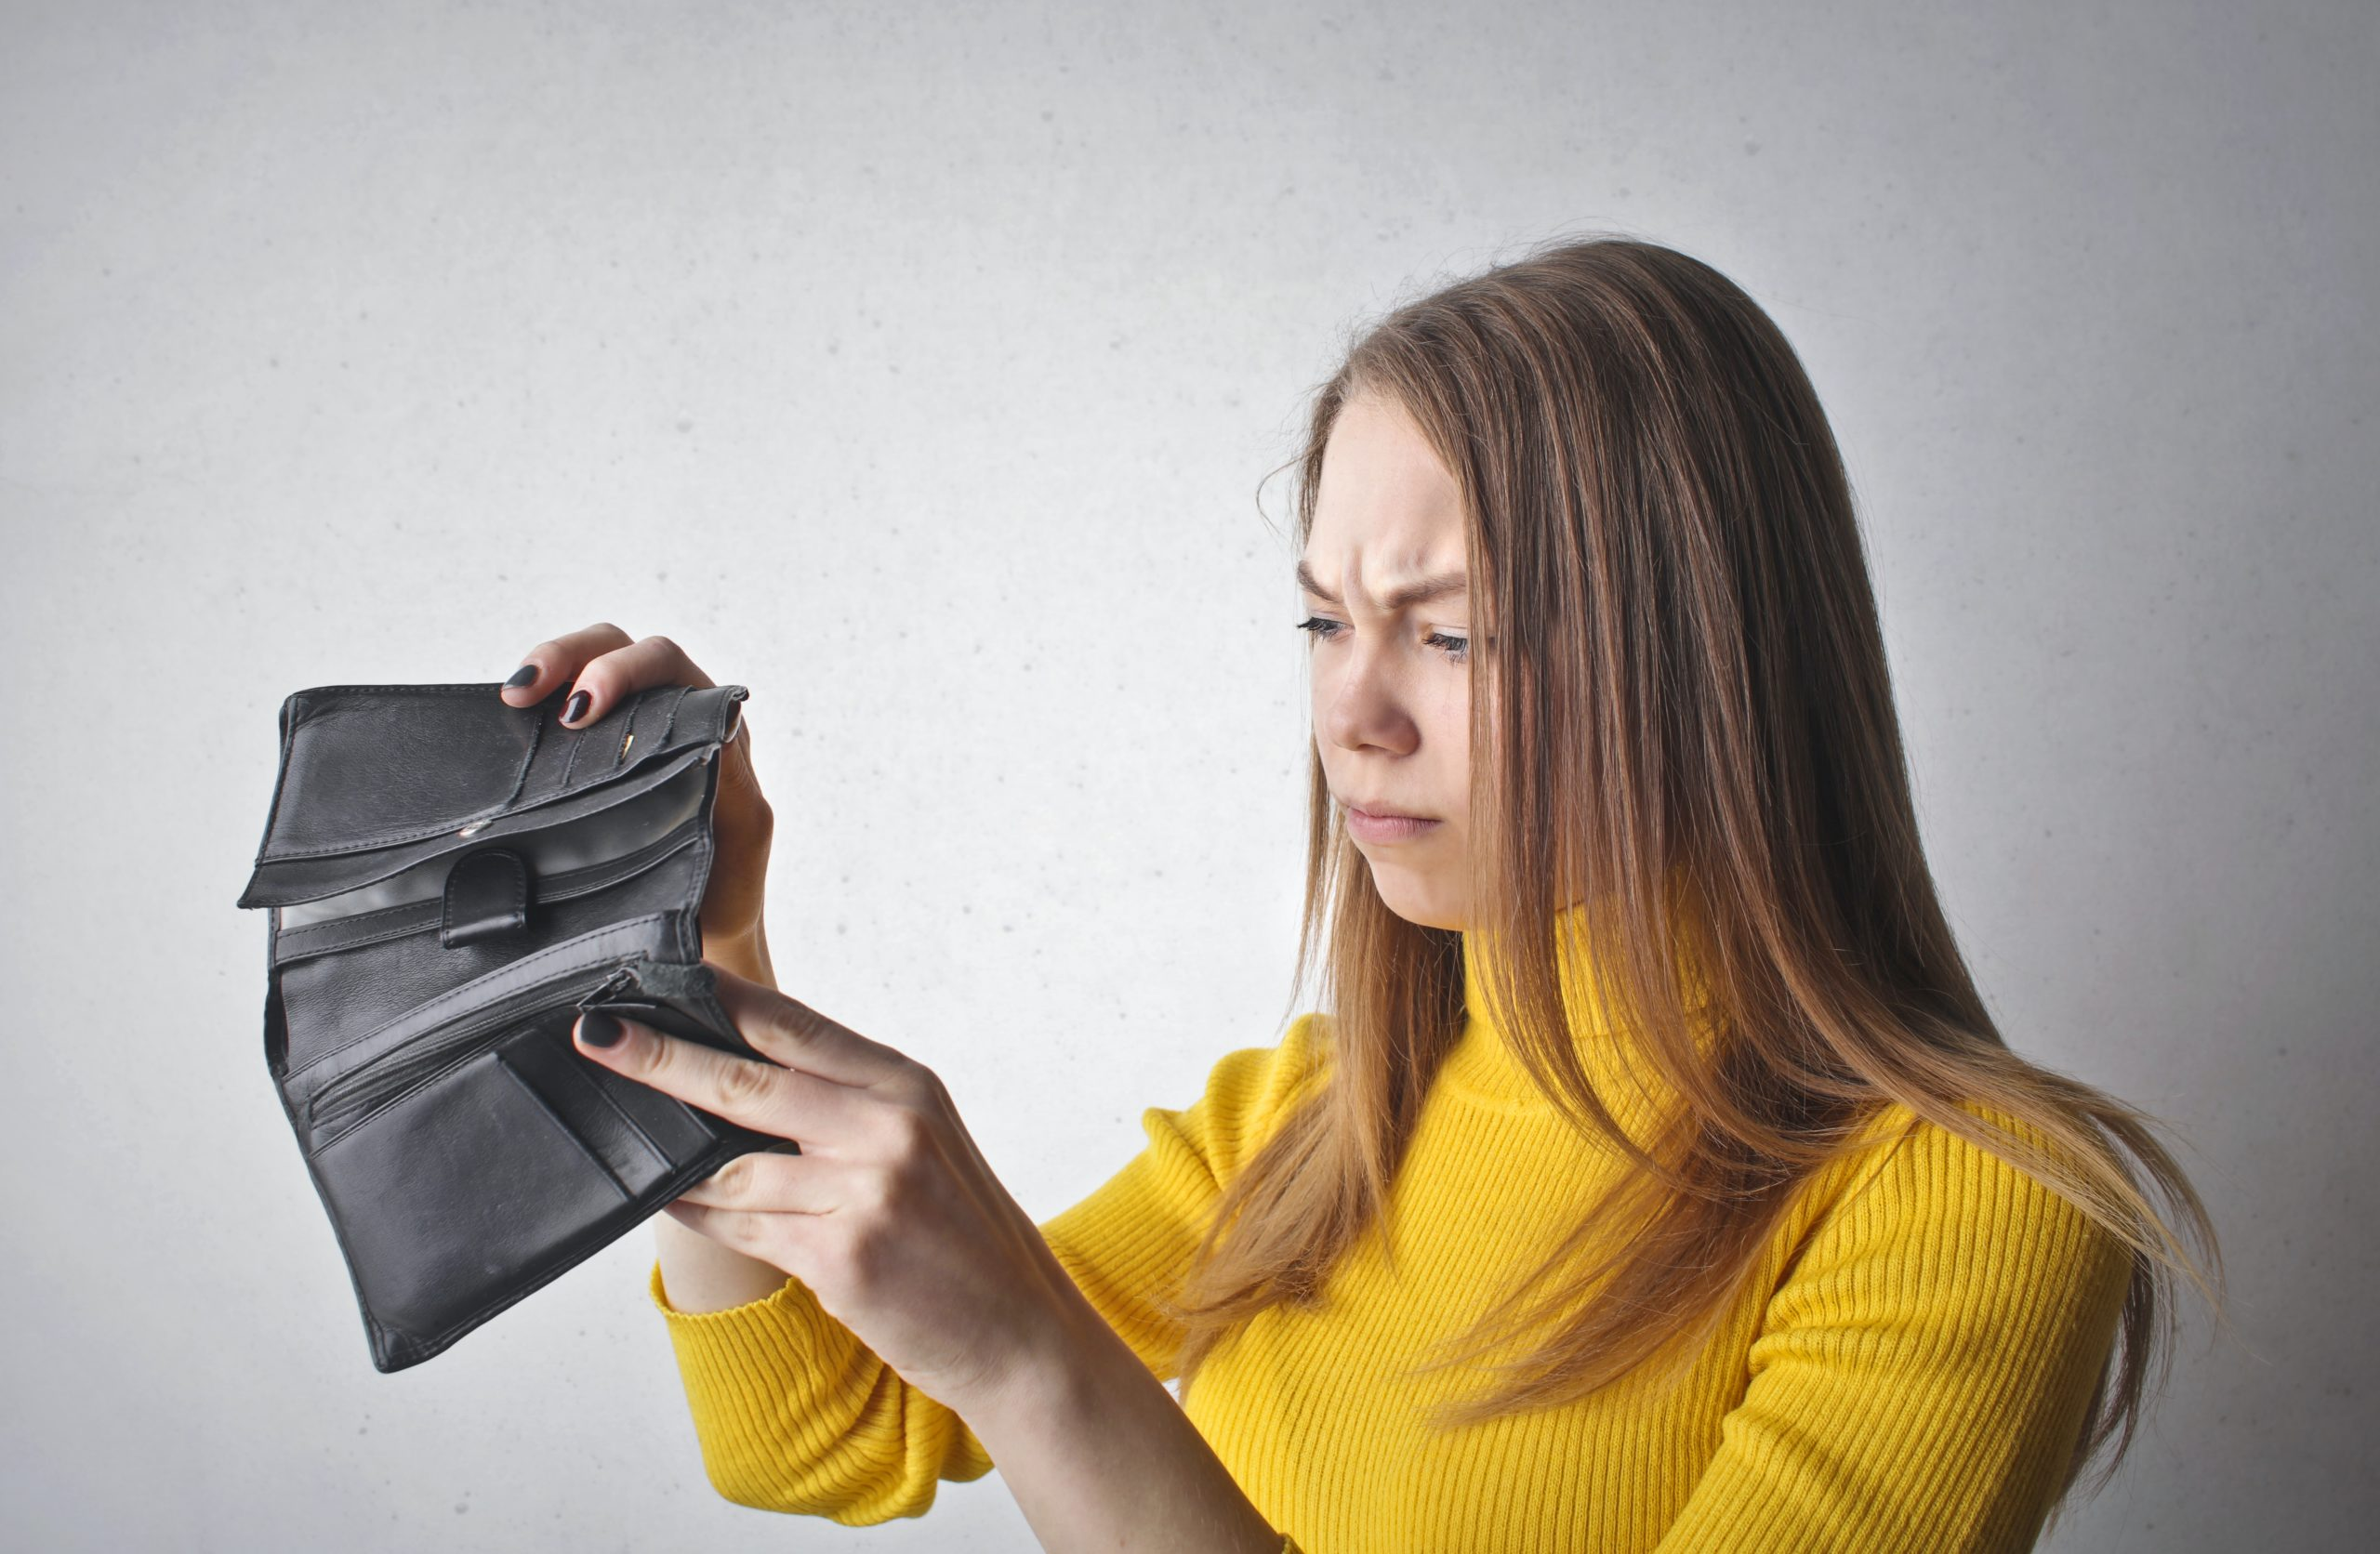 Woman in yellow turtle neck long sleeve shirt opening empty wallet and frowning